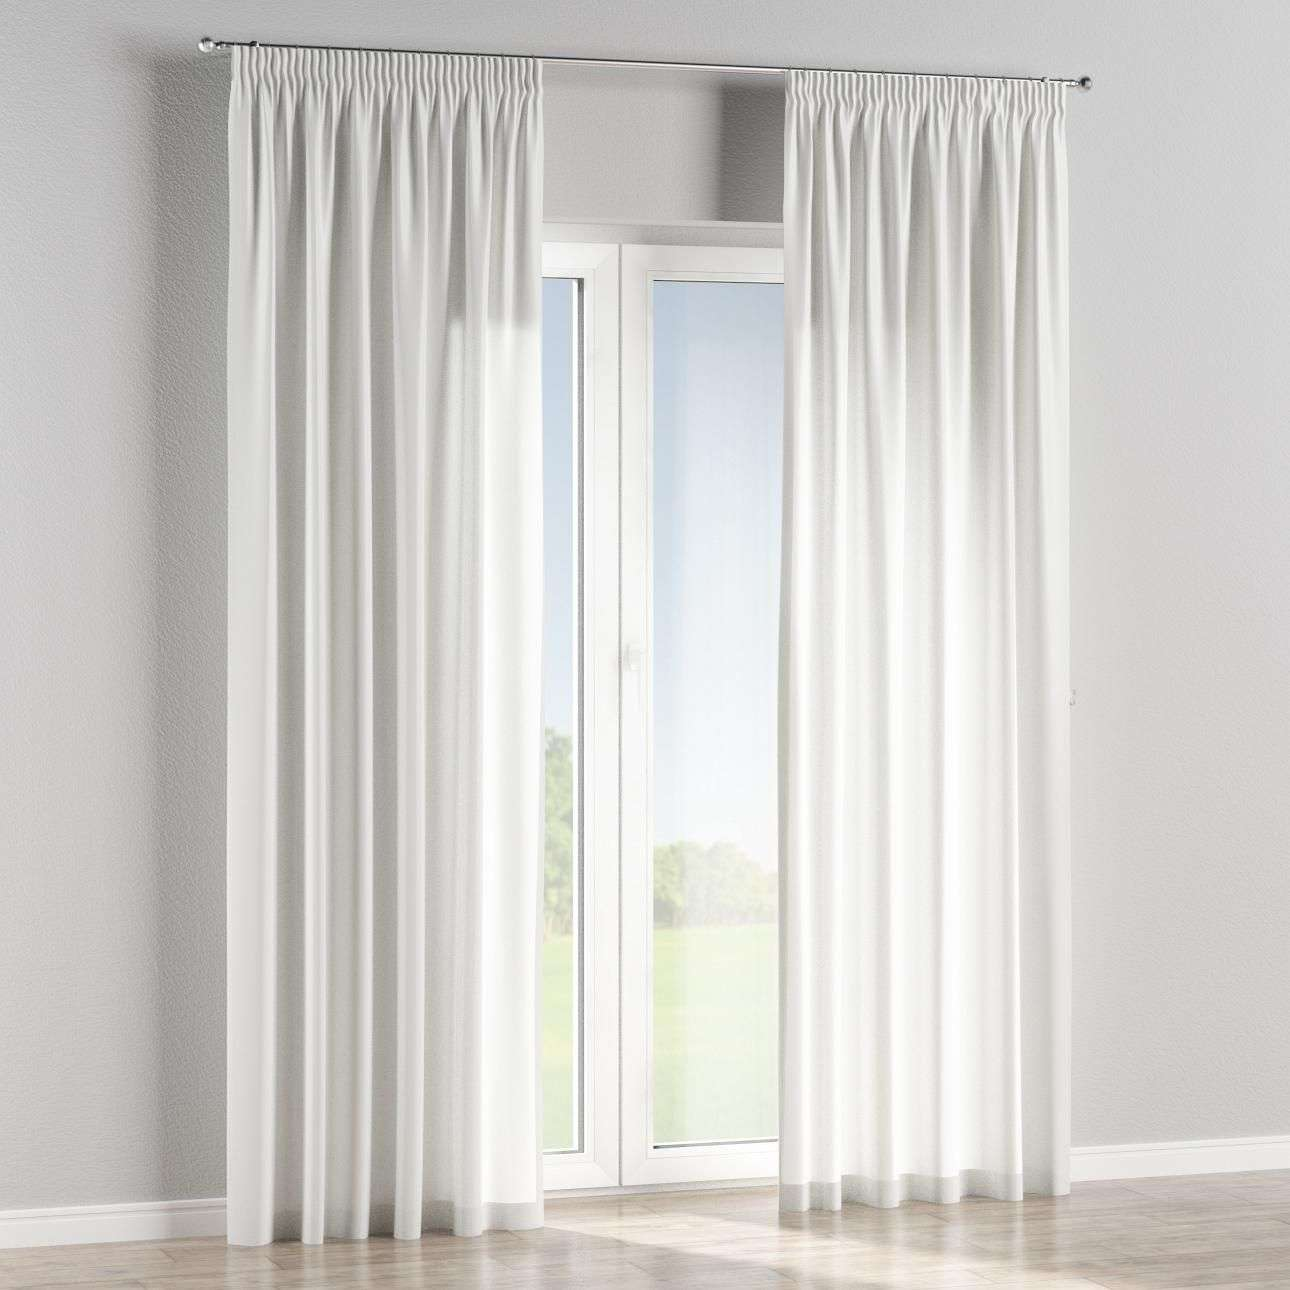 Pencil pleat lined curtains in collection Rustica, fabric: 140-59